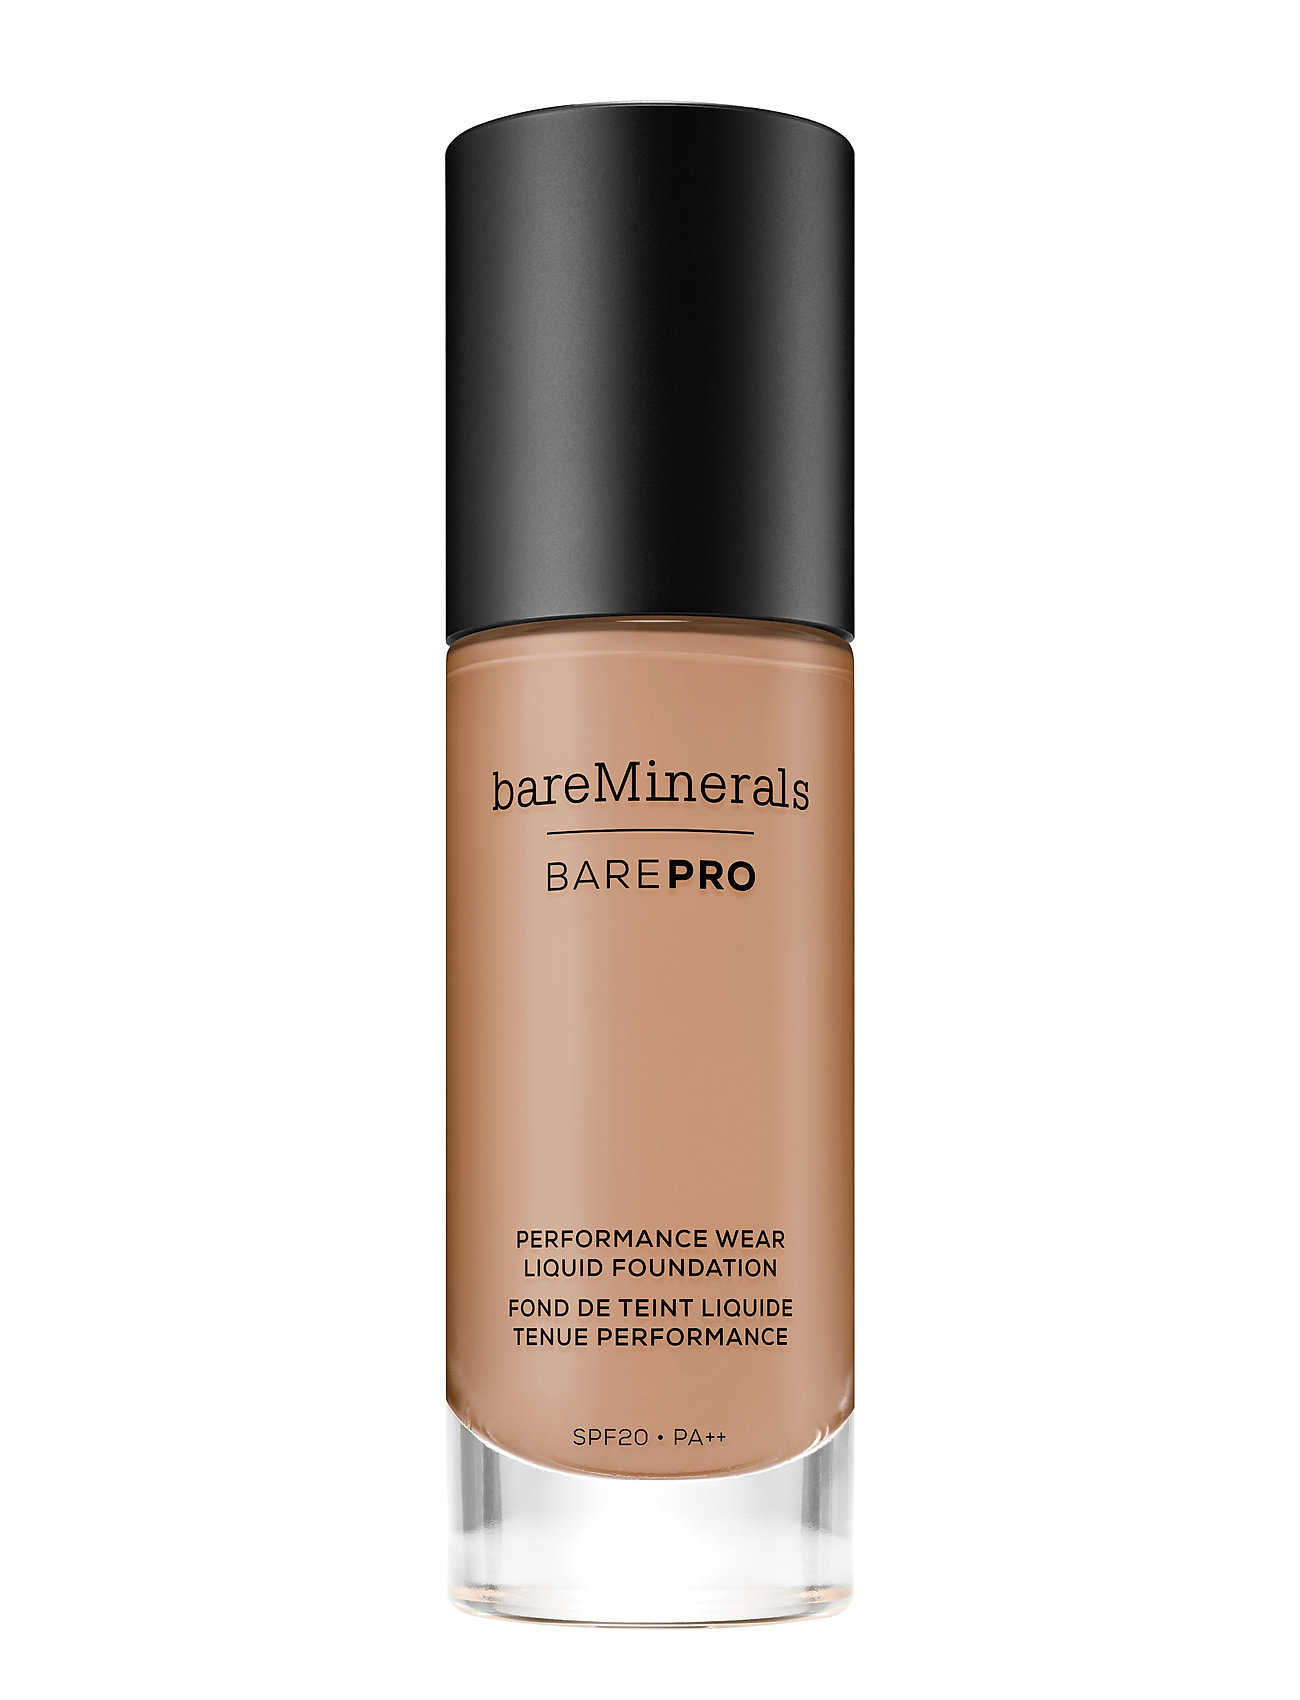 Image of Barepro Performance Wear Liquid Foundation Spf 20 Foundation Makeup BareMinerals (3409849895)